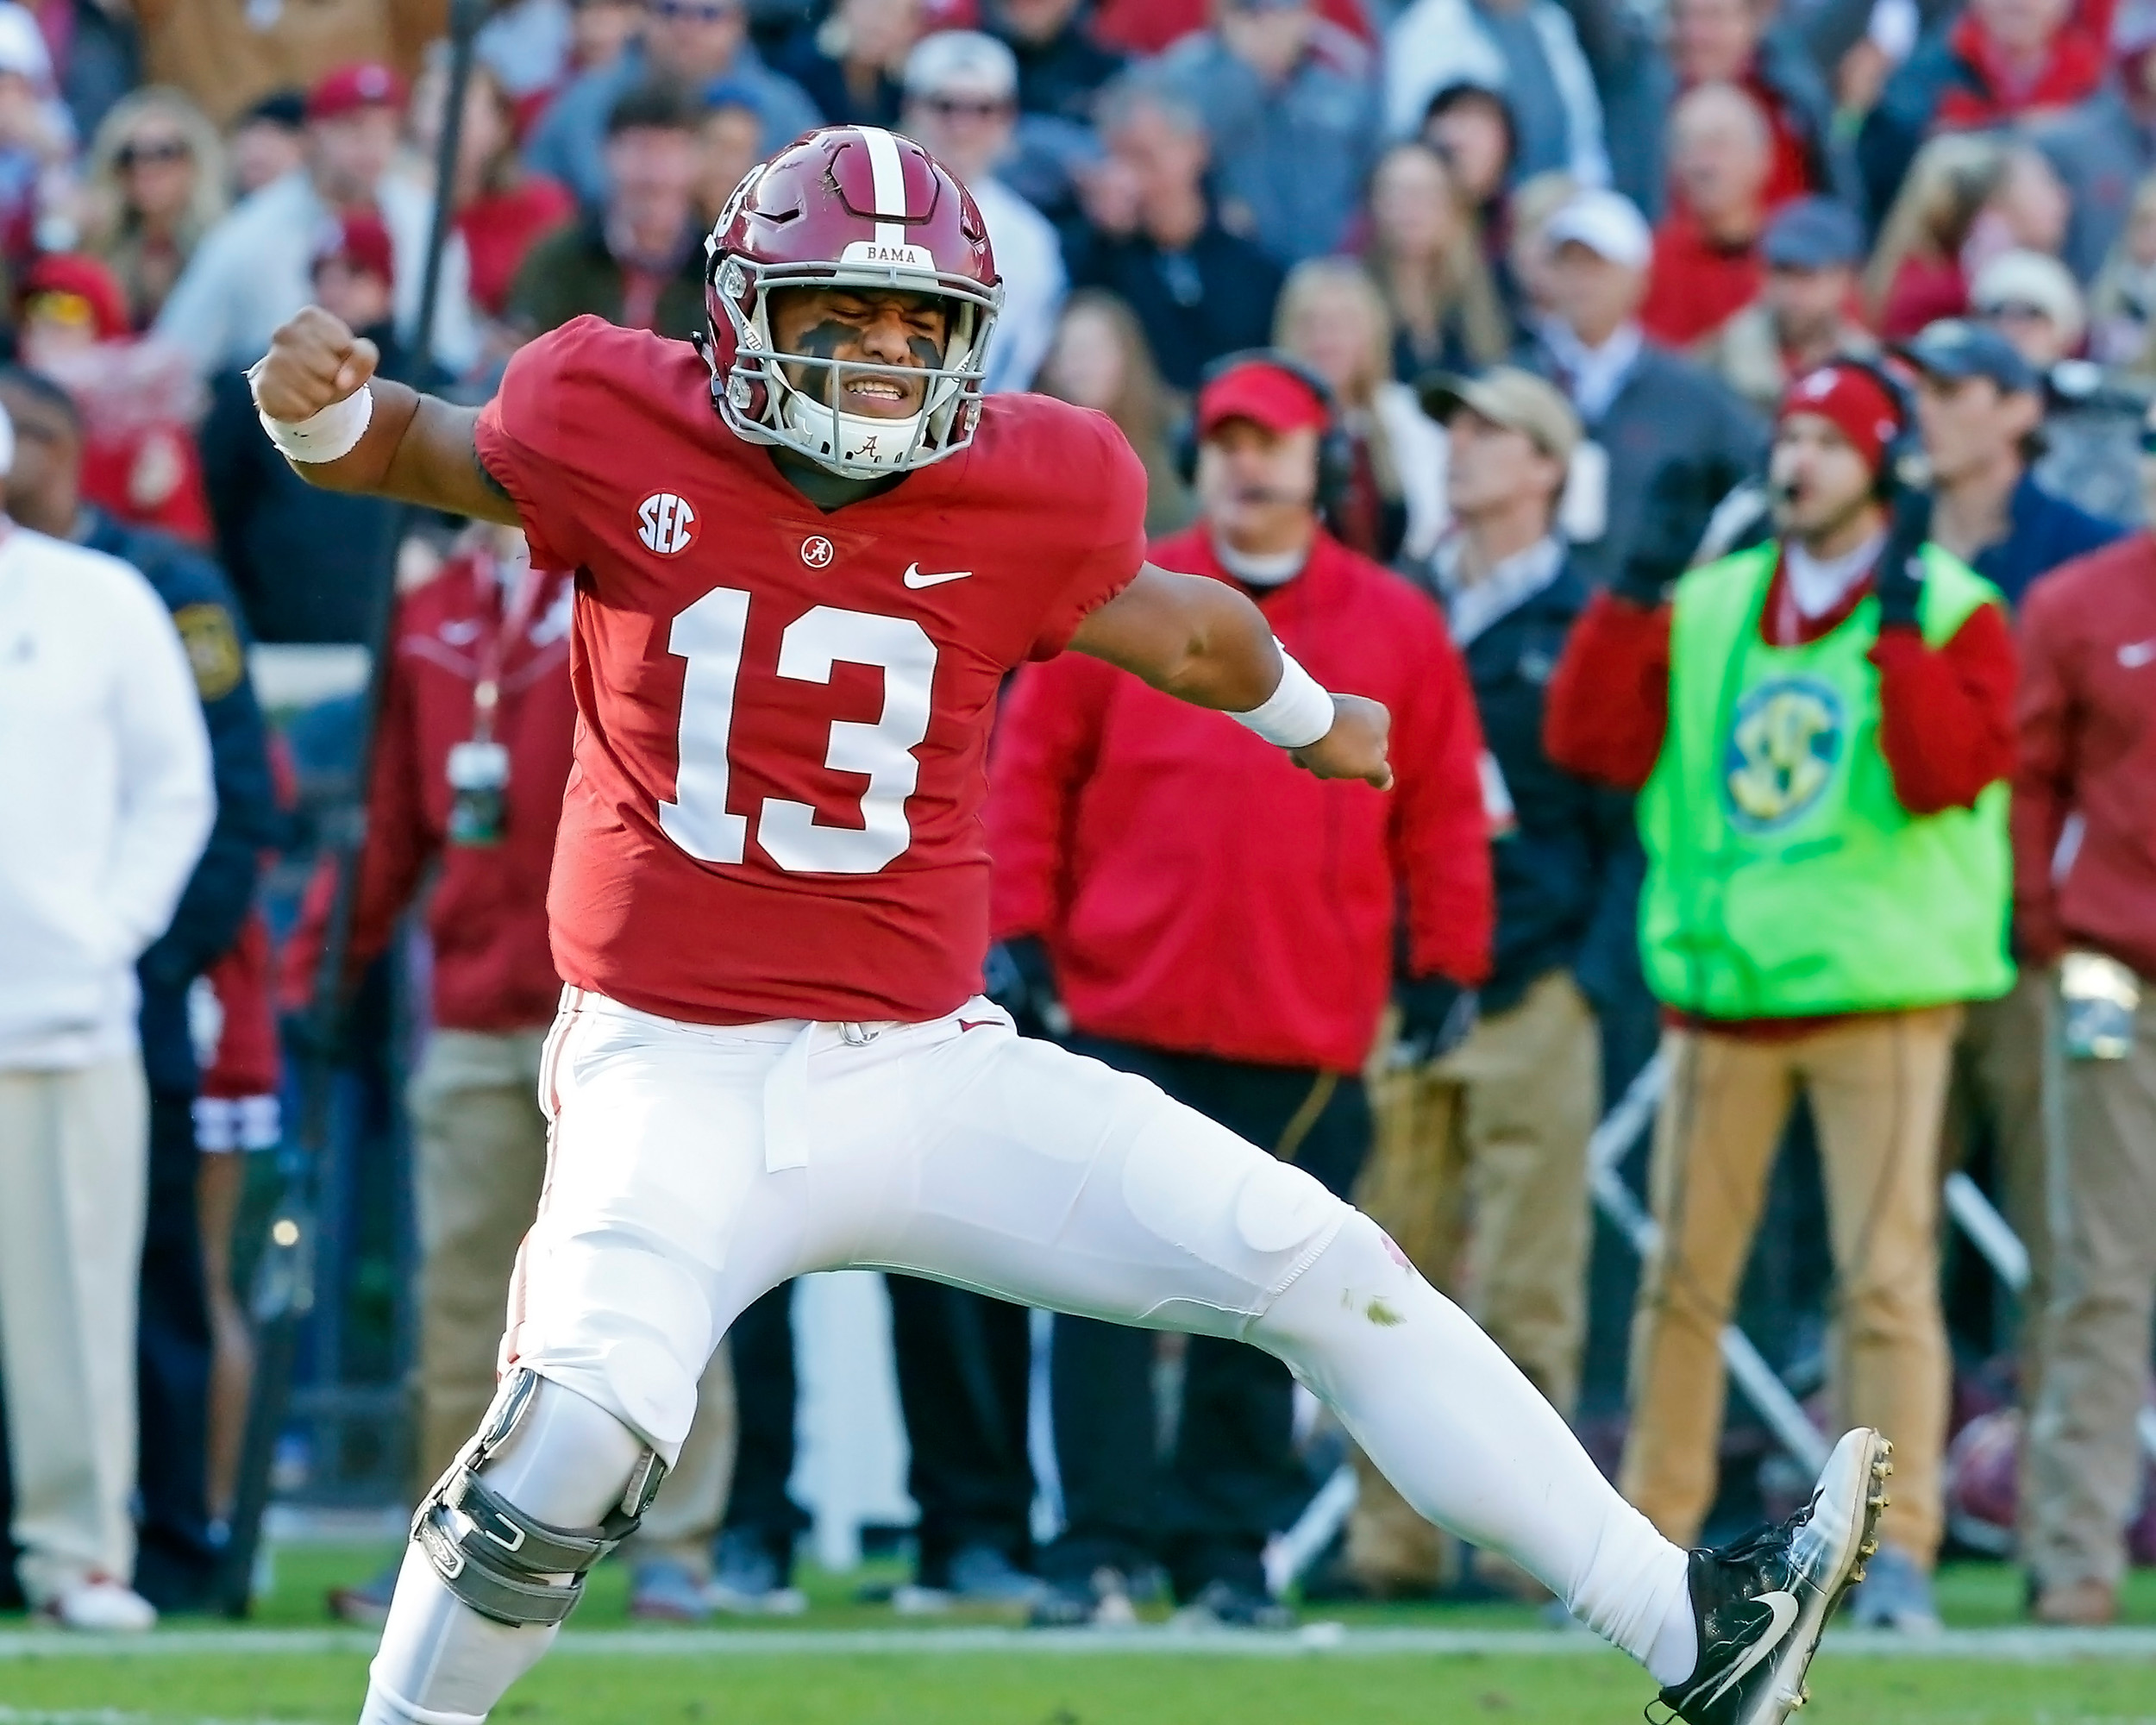 Alabama Crimson Tide quarterback Tua Tagovailoa (13) celebrates after a touchdown during the game between Mississippi State and the University of Alabama at Bryant-Denny Stadium in Tuscaloosa, Al. Credit: Jason Clark / Daily Mountain Eagle